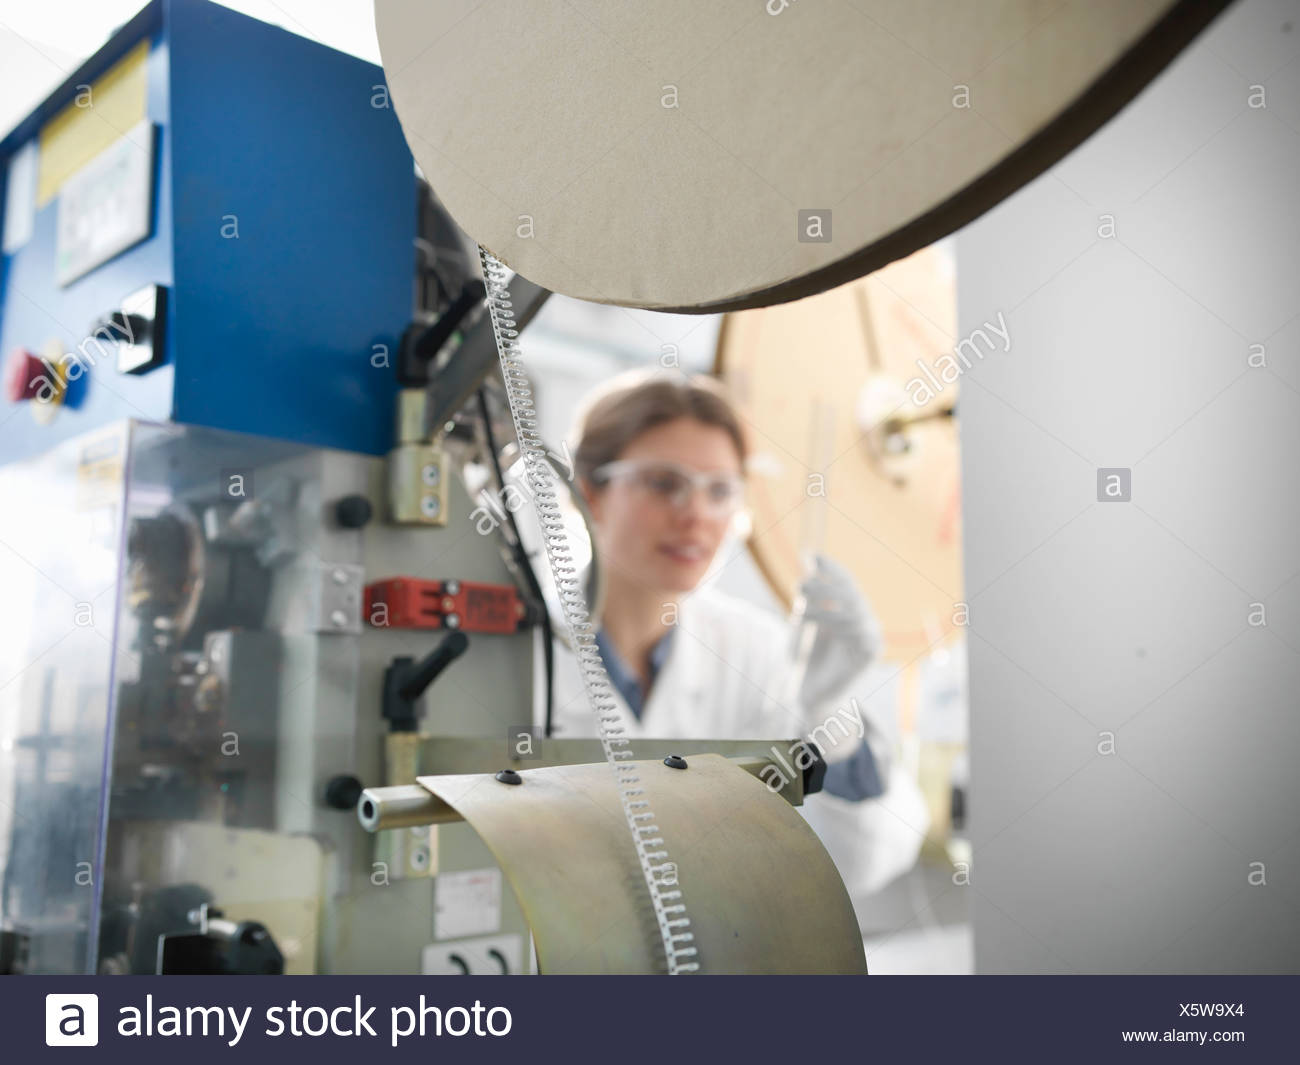 Worker with electronic component machine - Stock Image